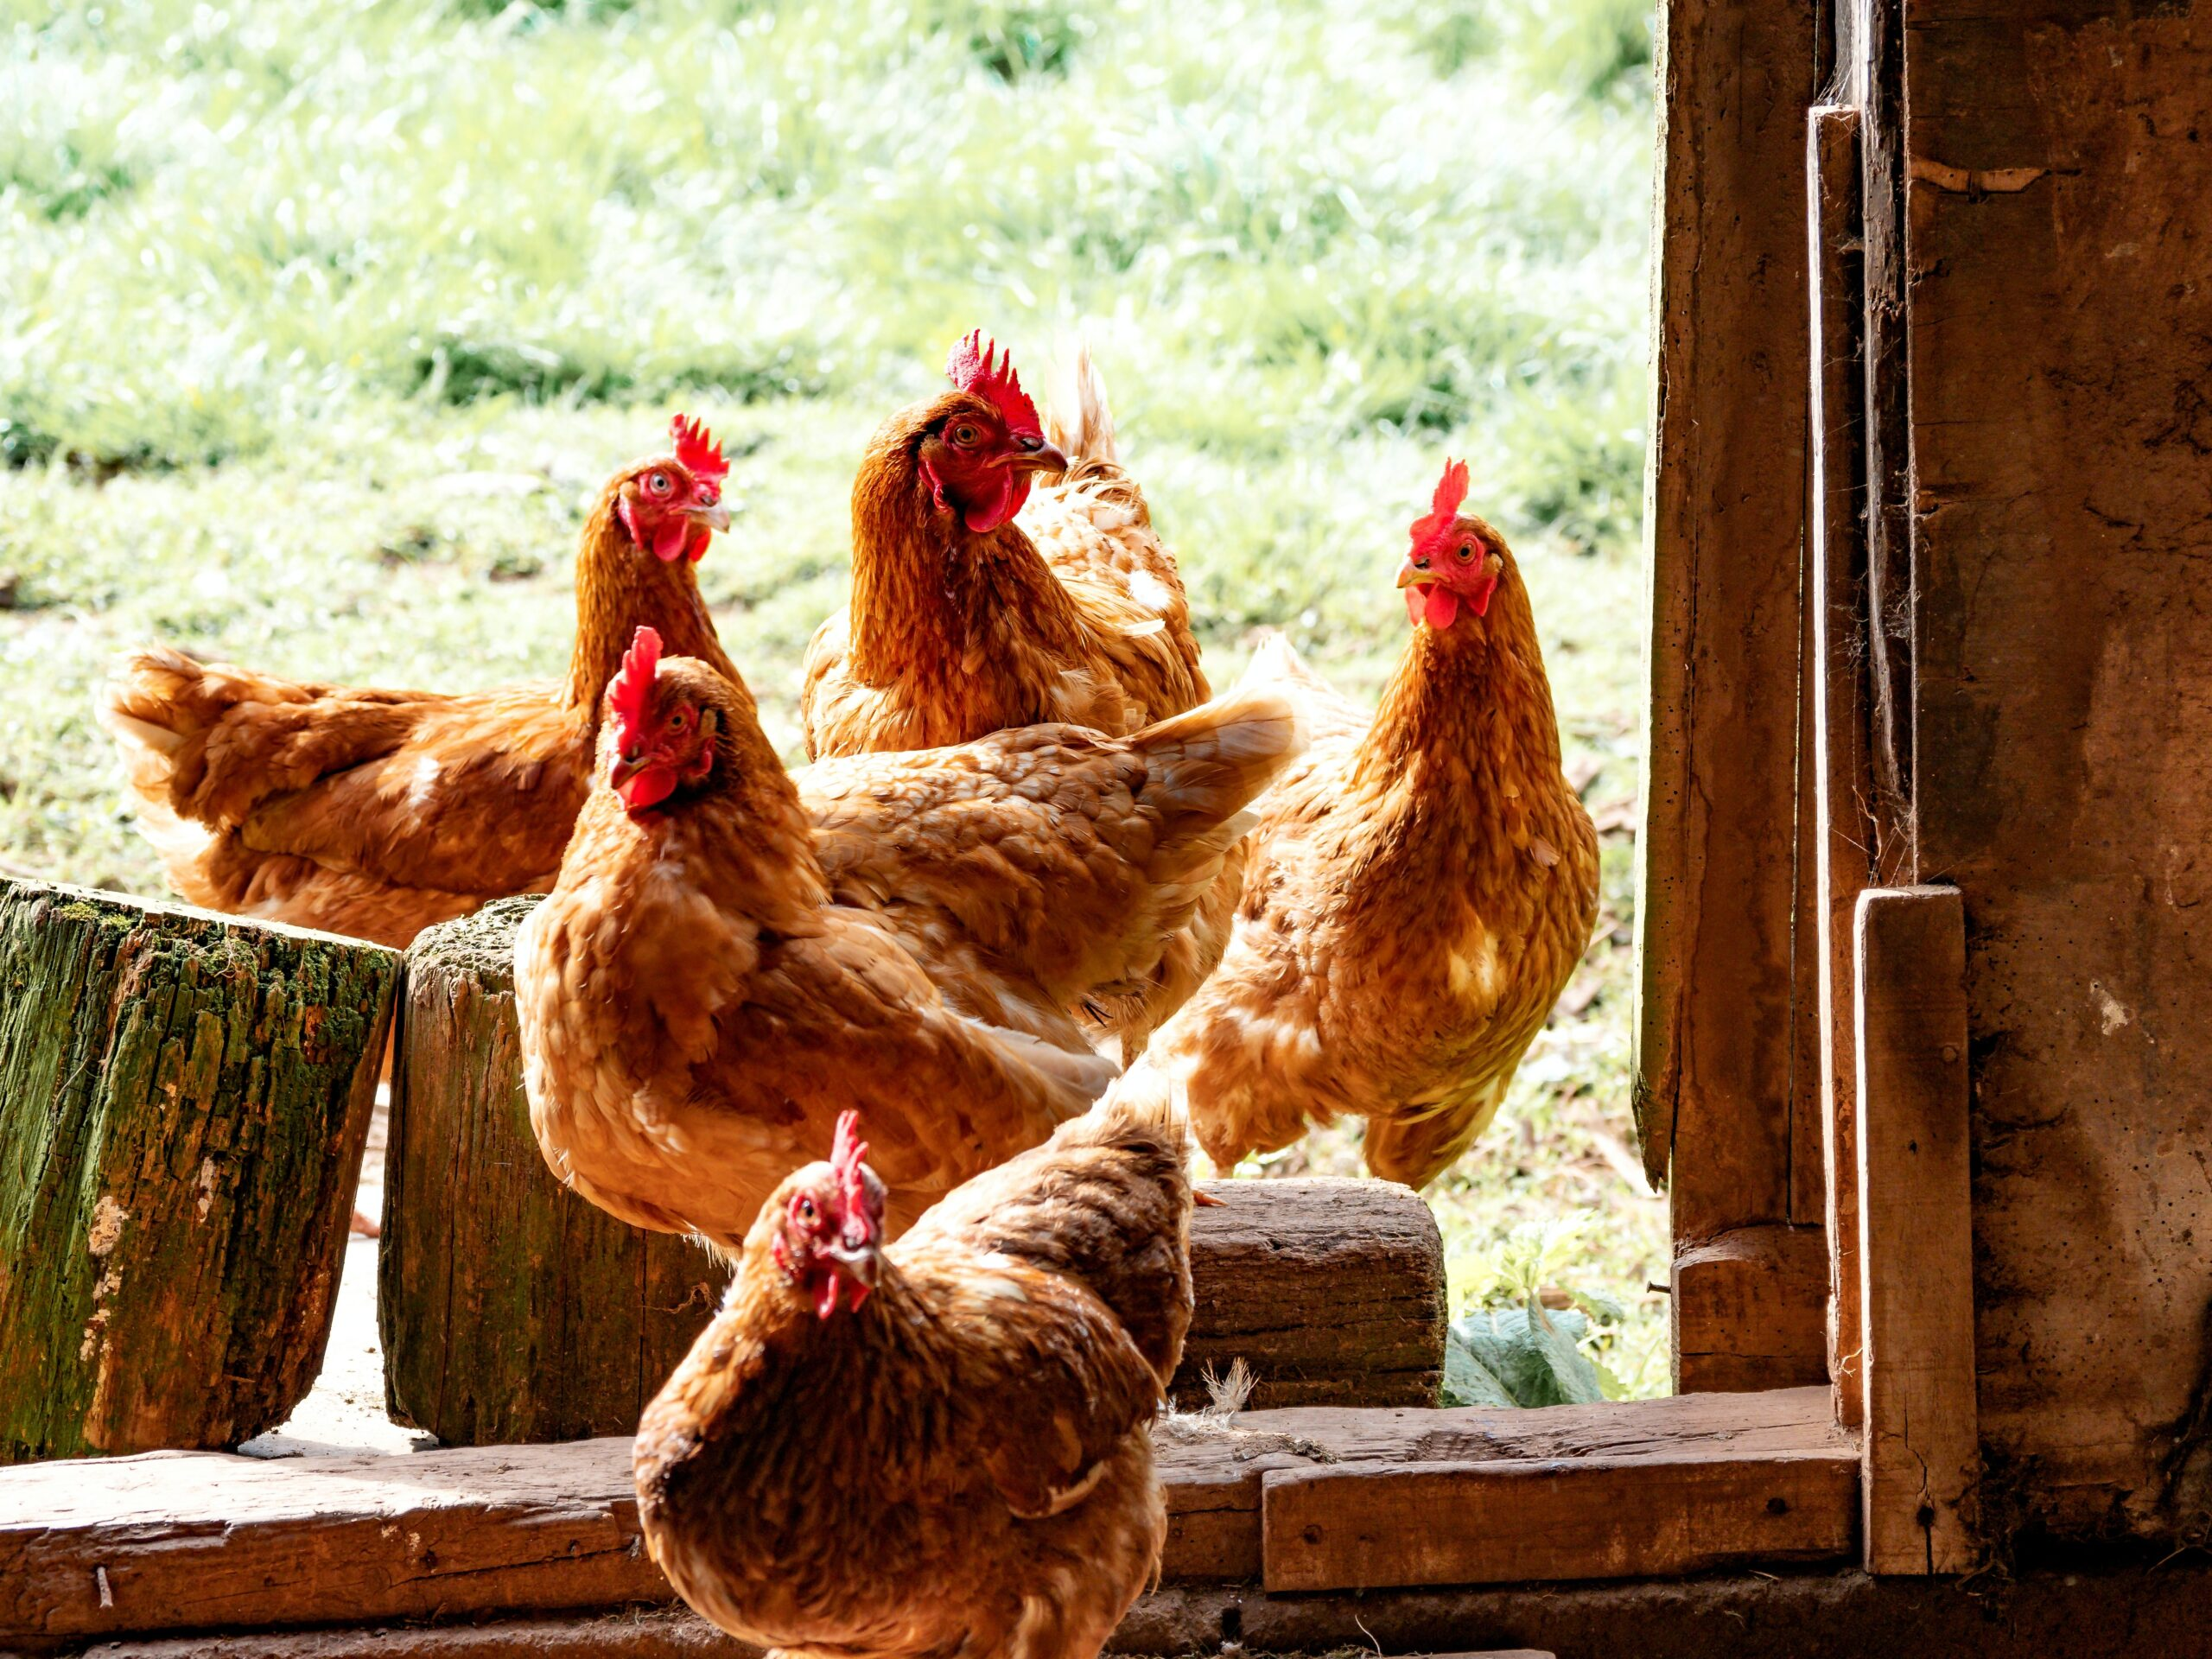 Covid-19 production challenges are driving scarcity in the supply of processed chicken meat.